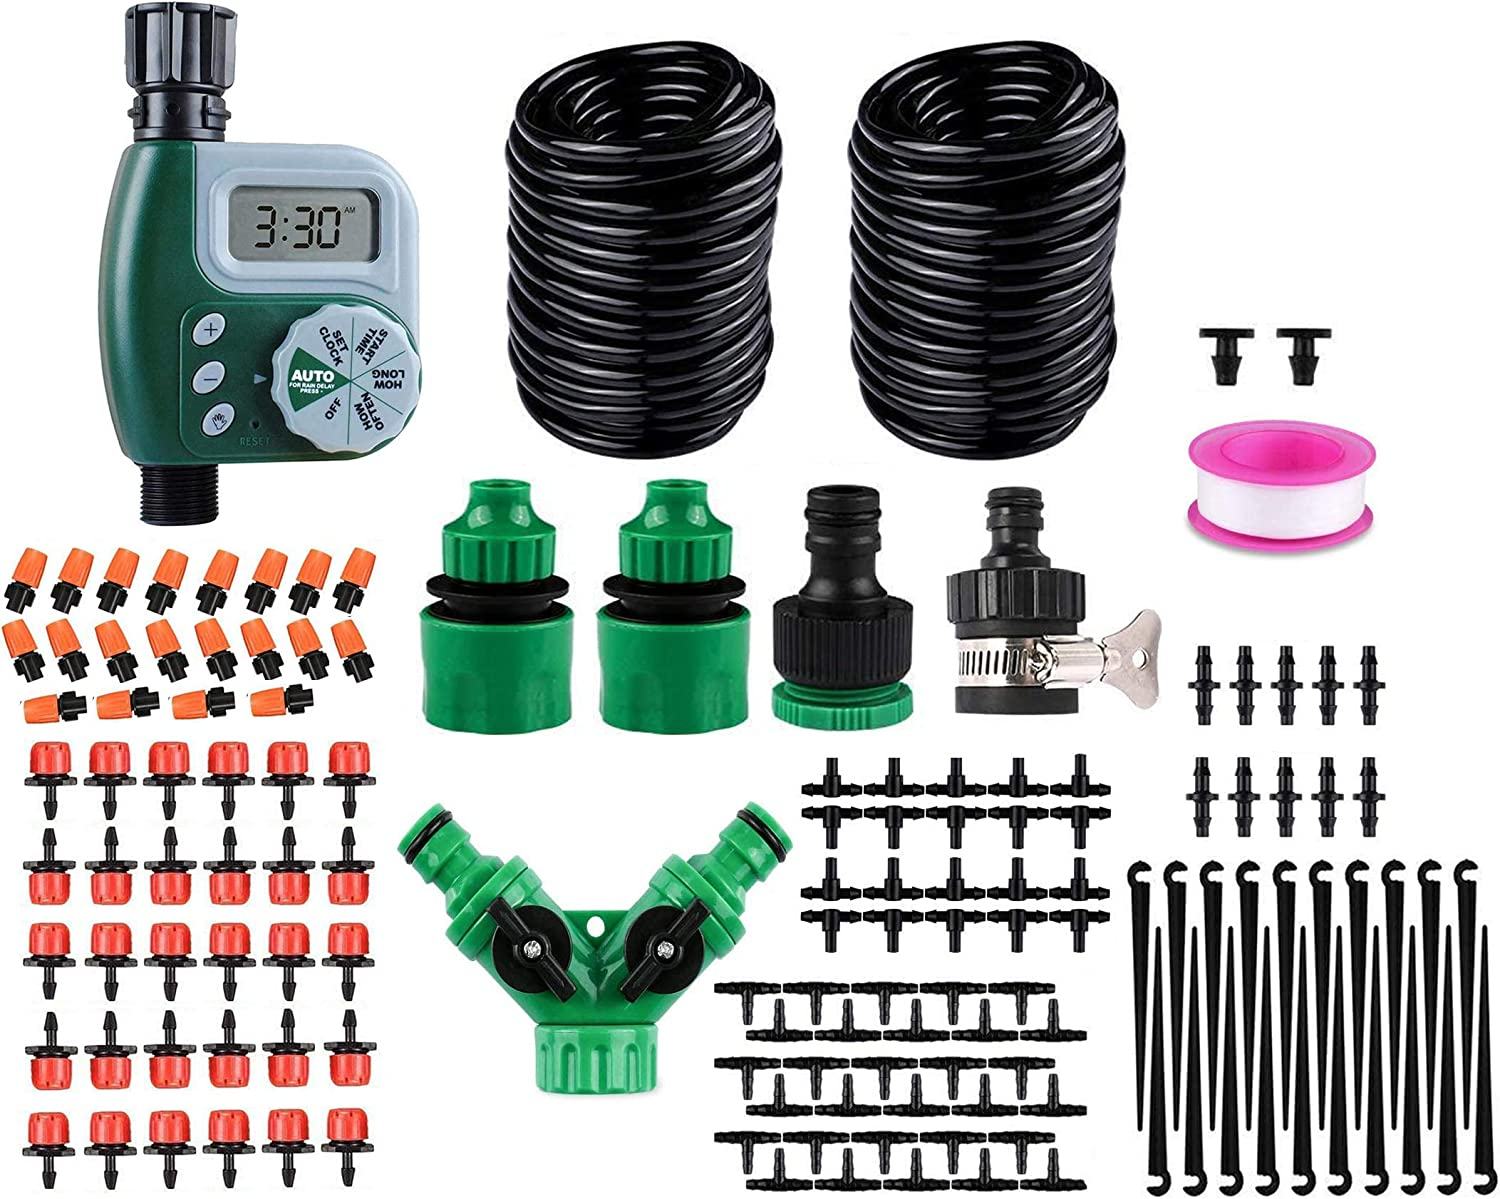 "100ft/30M Drip Irrigation Kit with Hose Watering Timer 151PCS DIY Automatic Garden Irrigation System for Garden,Greenhouse 1/4"" Tubing Hose Adjustable Nozzles Micro Drip Set (No Battery)"